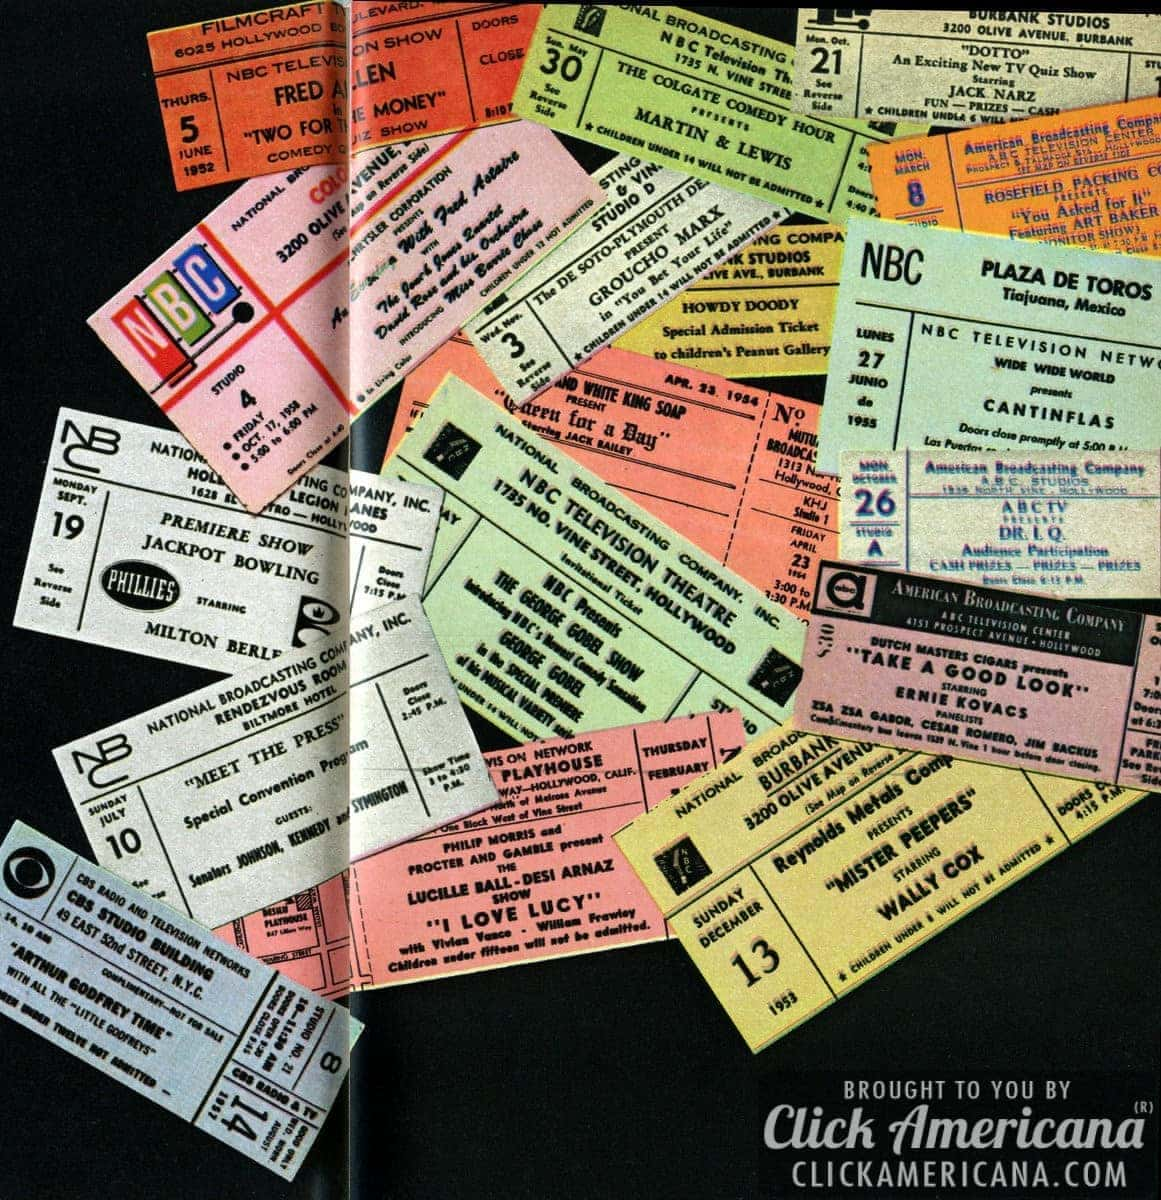 Collectors' items: Ticket stubs from the 1940s & 1950s